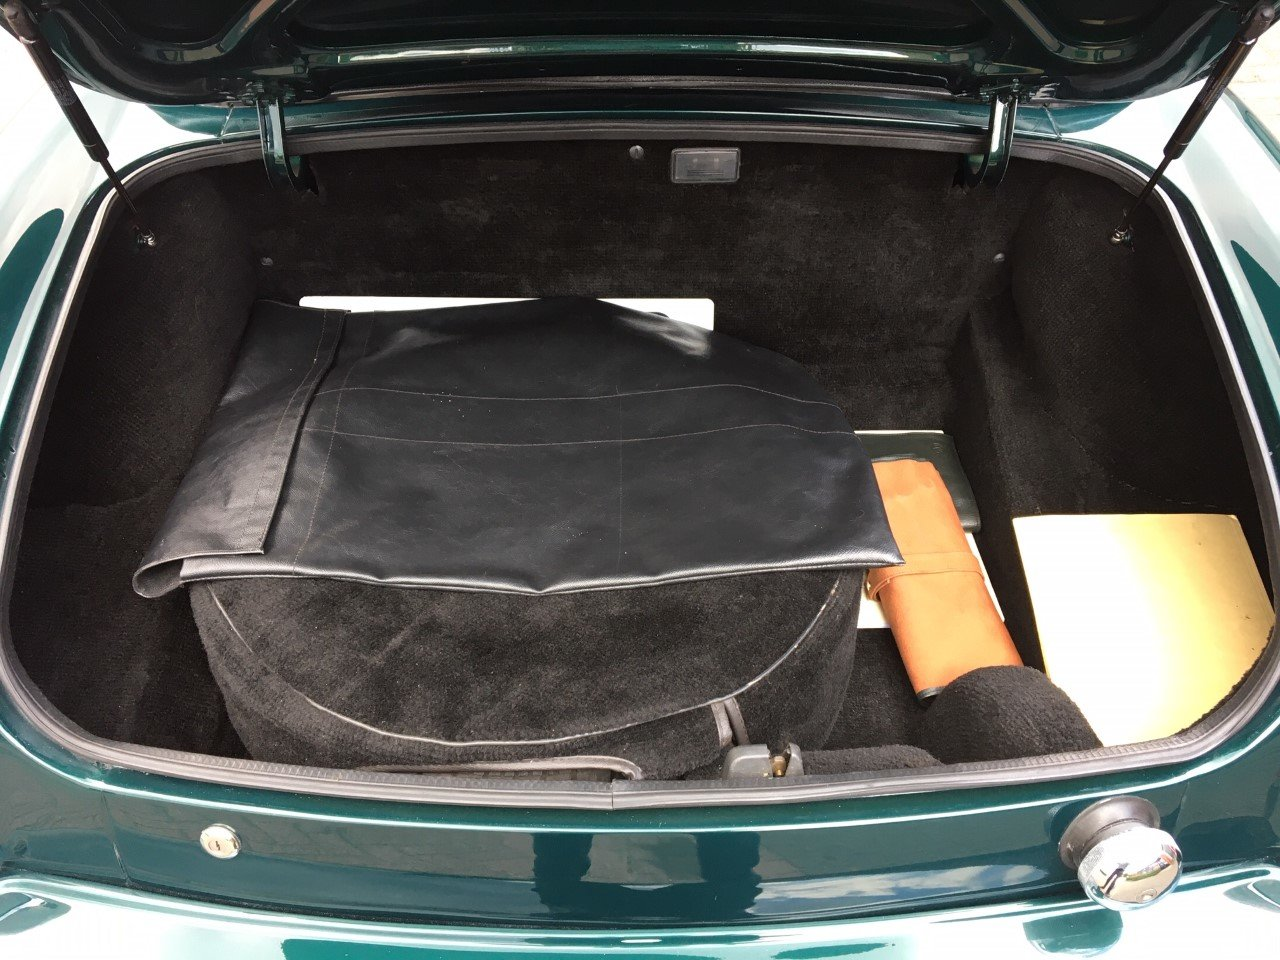 1993 MG RV8 LHD British Racing Green For Sale (picture 5 of 6)